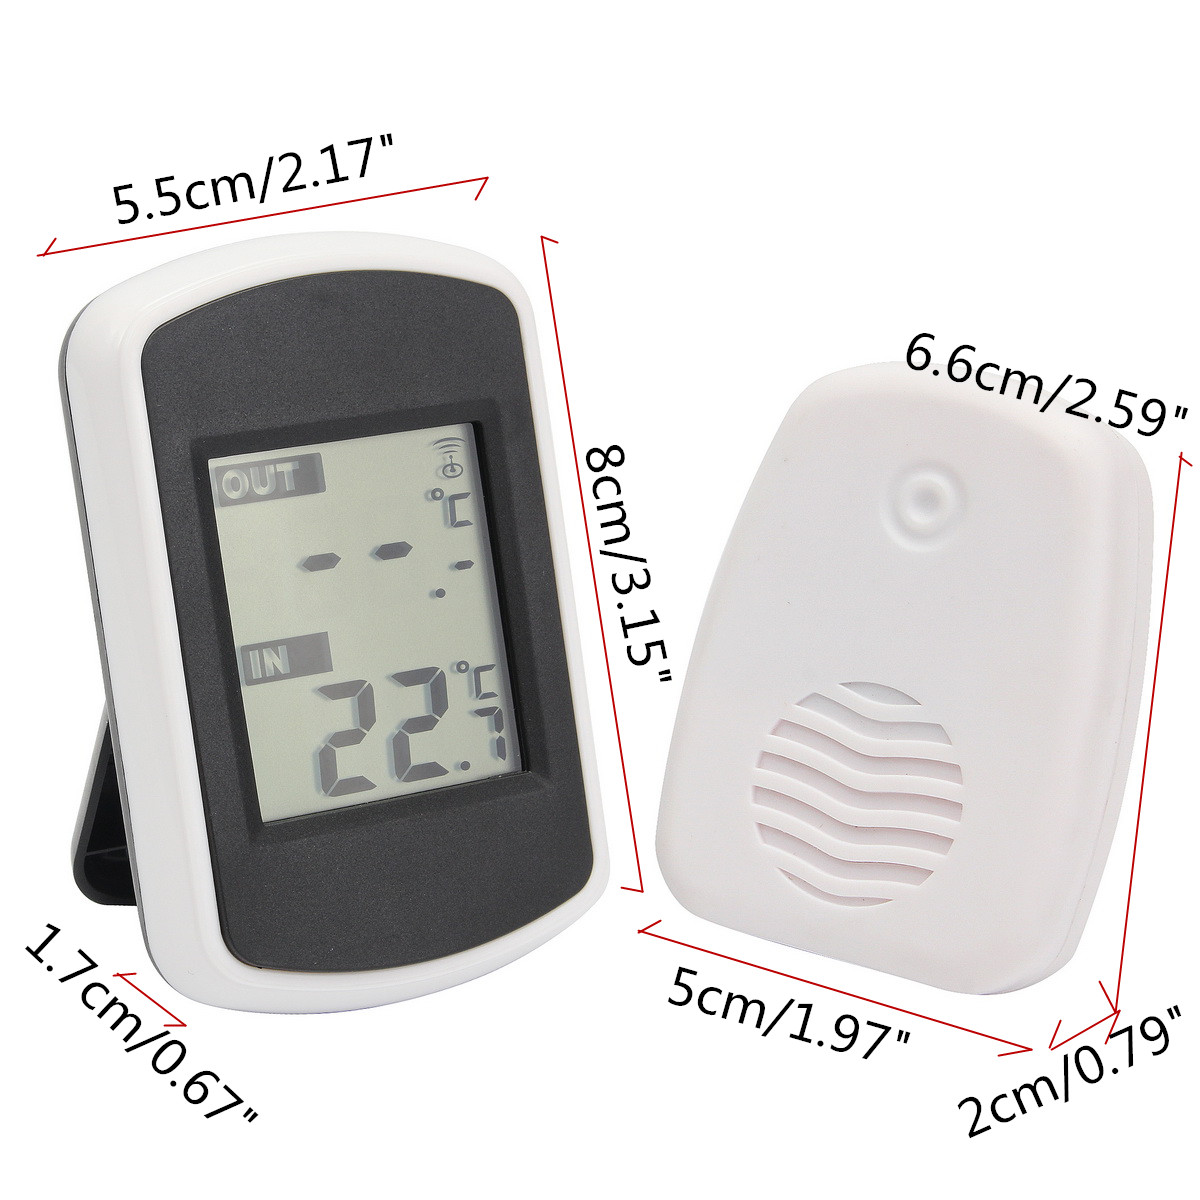 TS-FT004-B Digtal Ambient Weather Wireless Thermometer Indoor Outdoor Temperature Tester